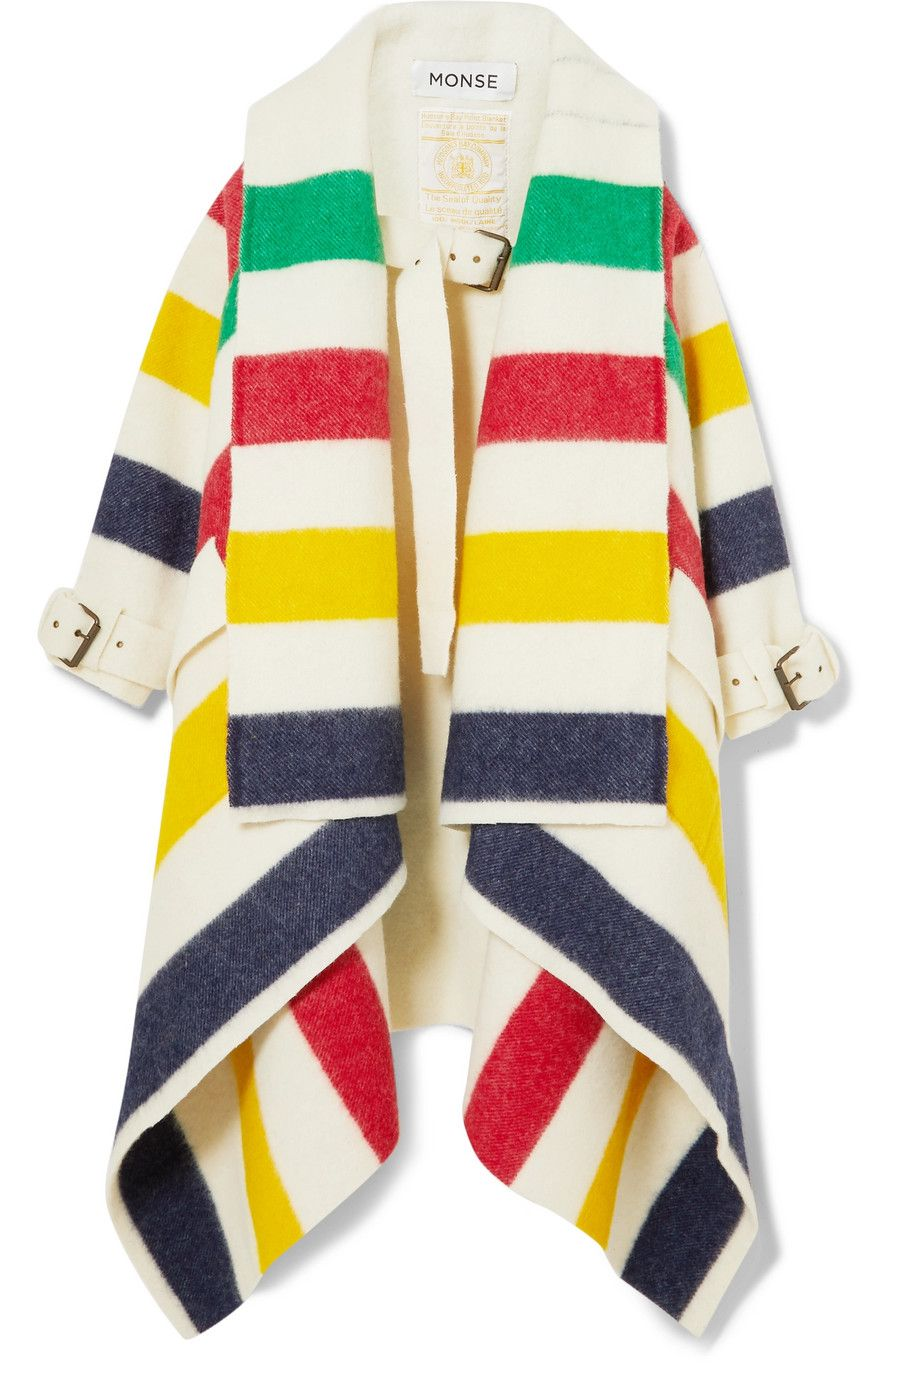 shop-monse-maison-striped-blanket-coat-hudson-bay